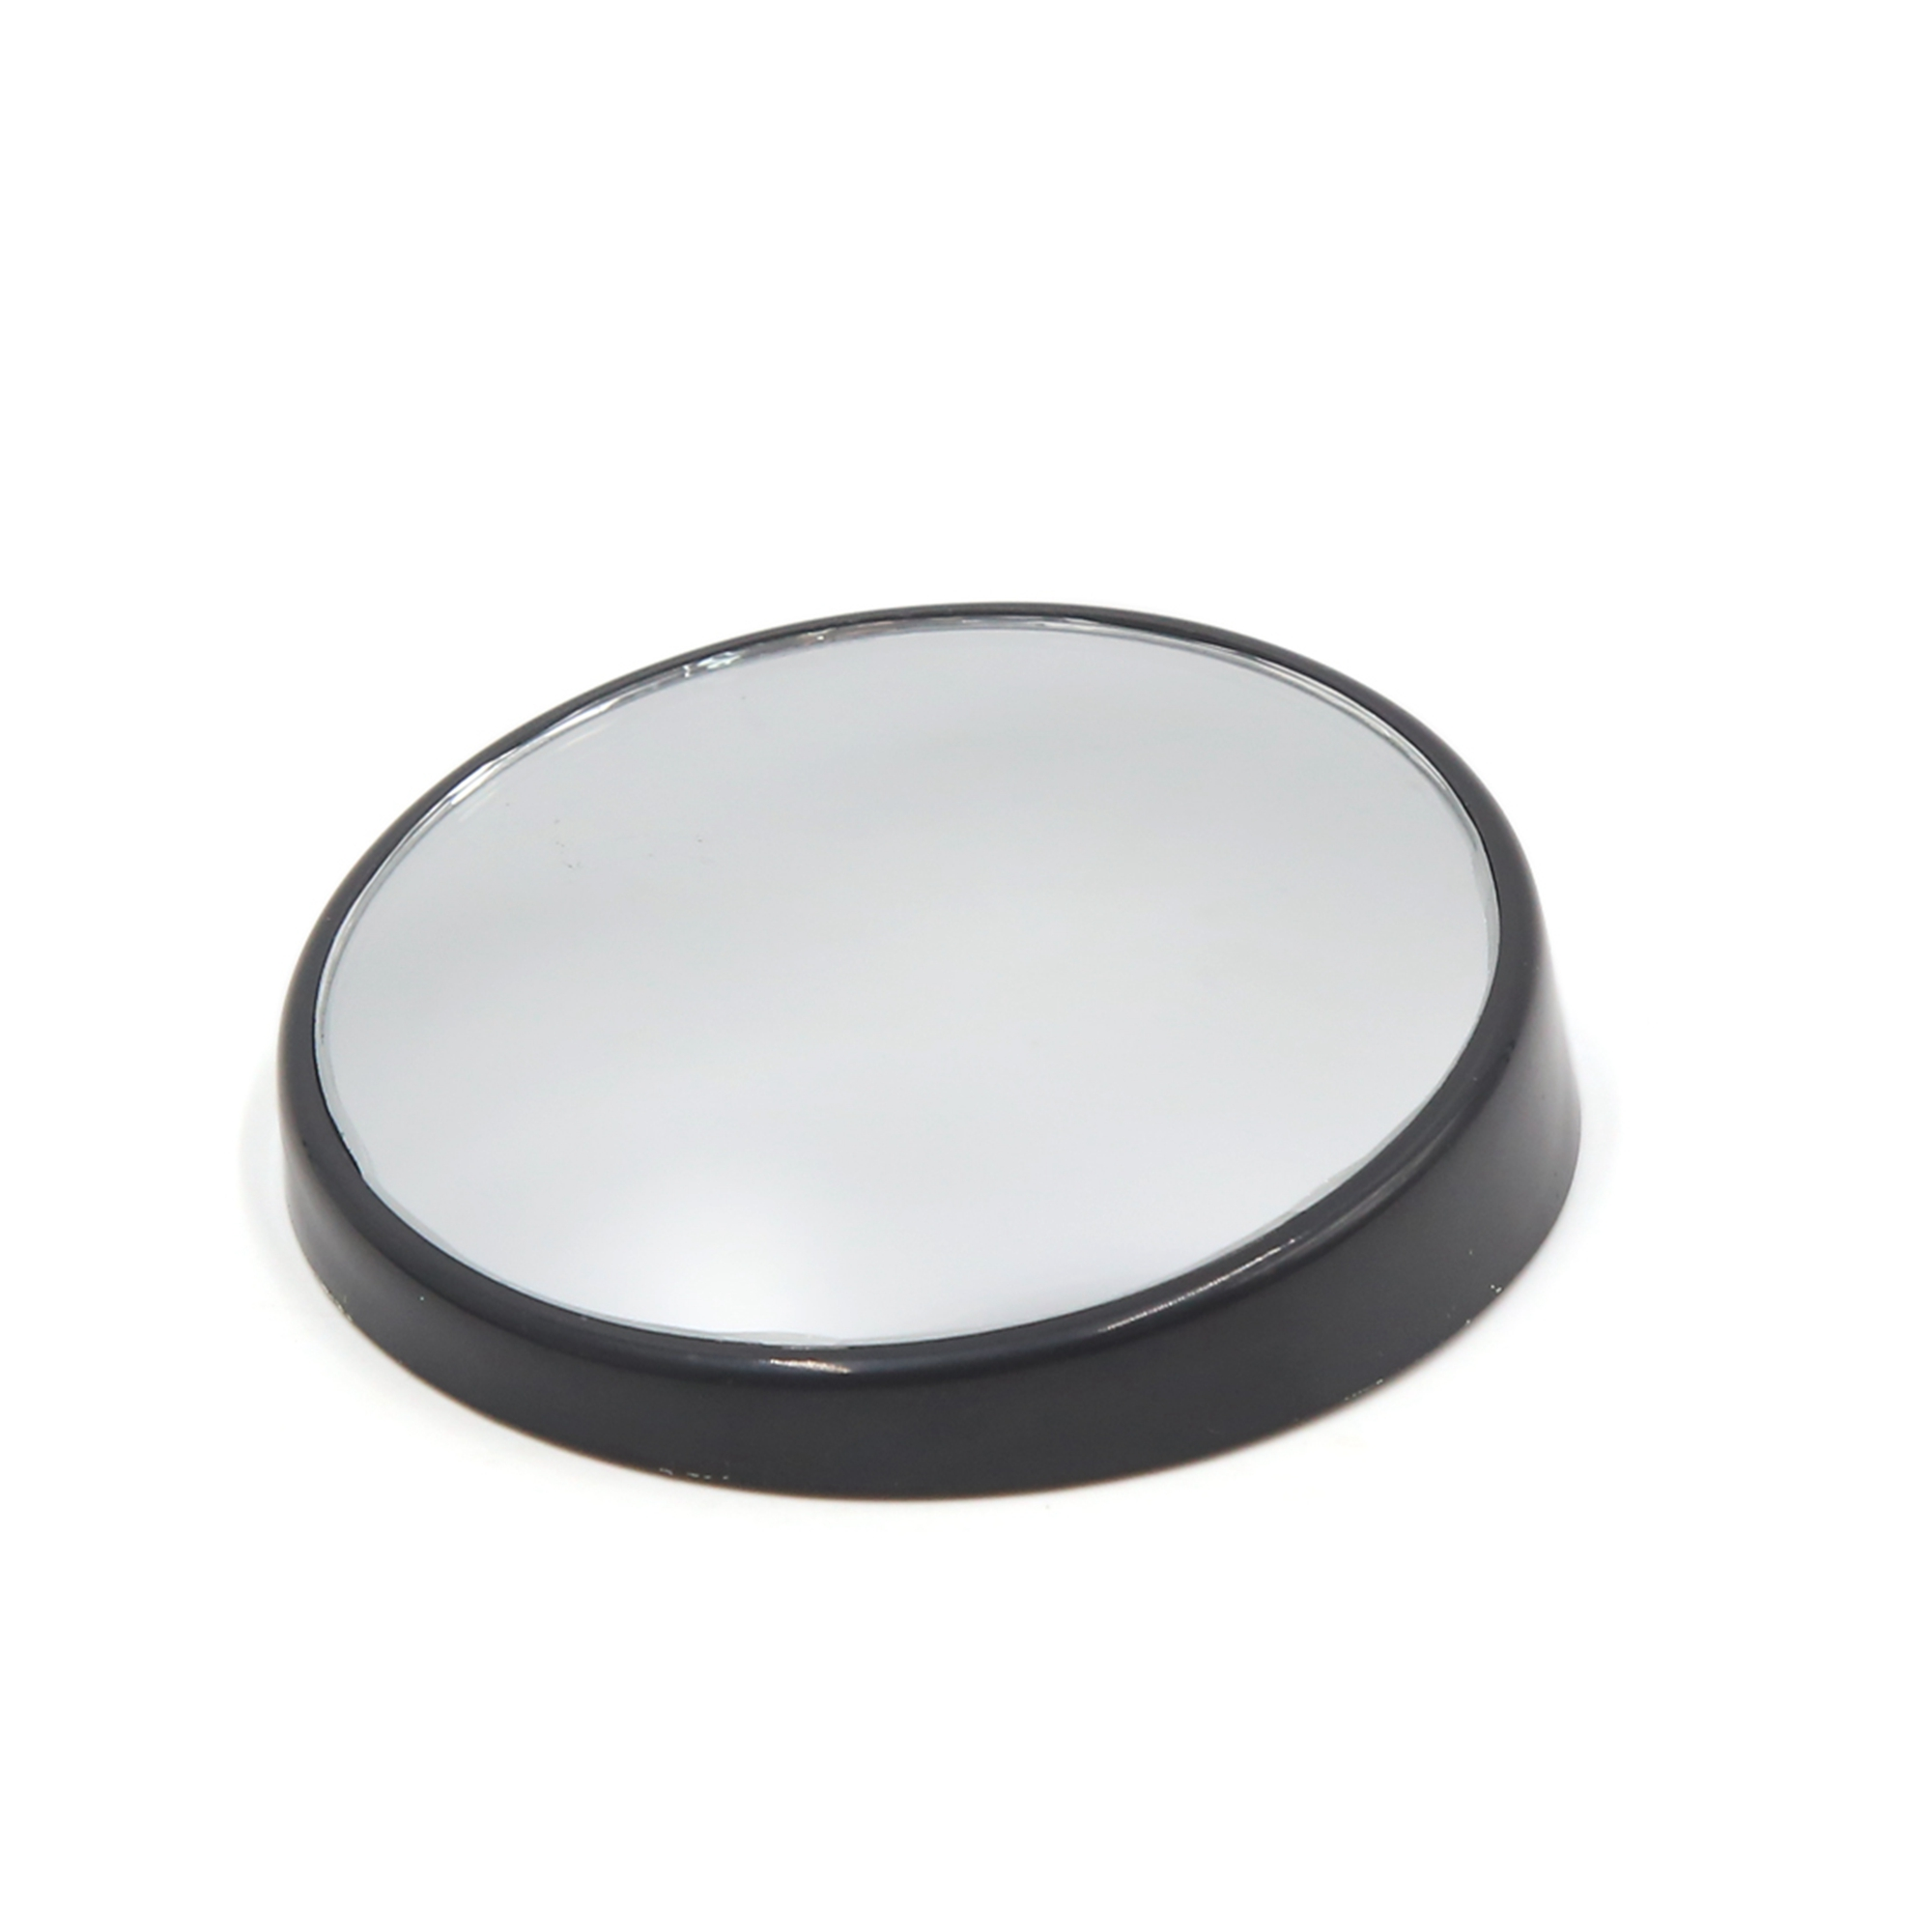 Black Shell 70mm Round Convex Wide Angle Automobile Rear View Blind Spot Mirror